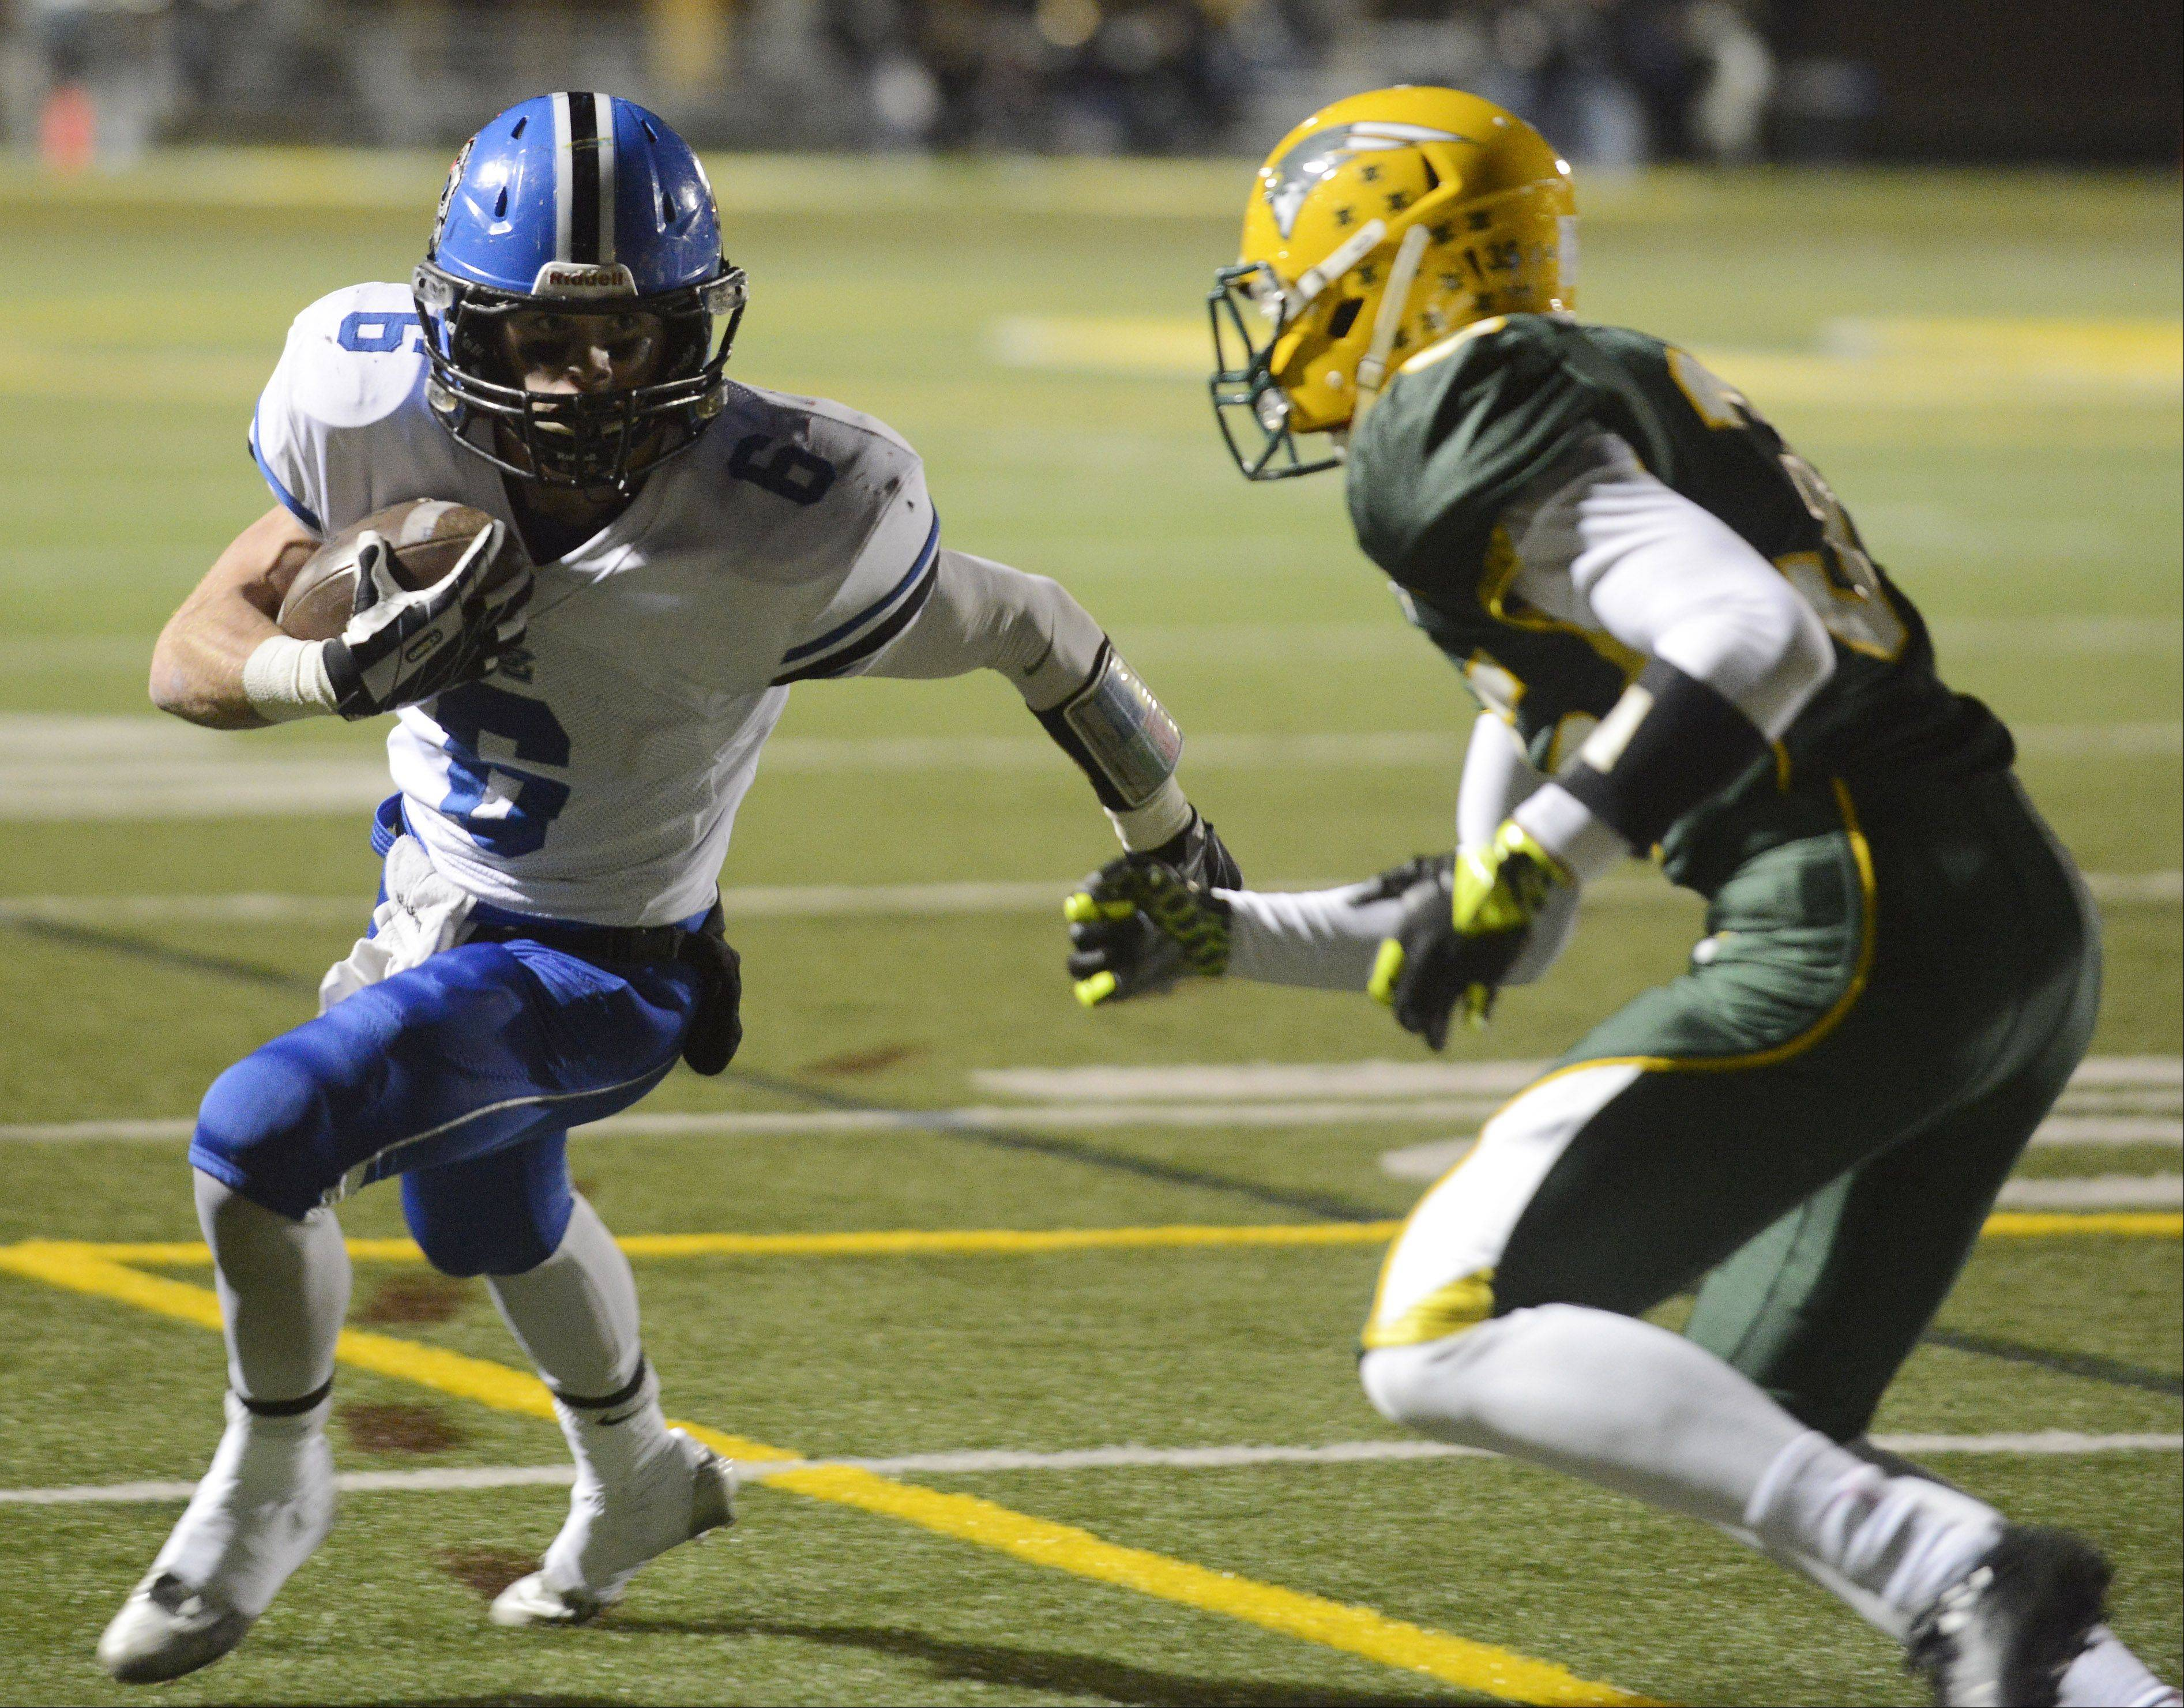 Images: Stevenson vs. Lake Zurich football